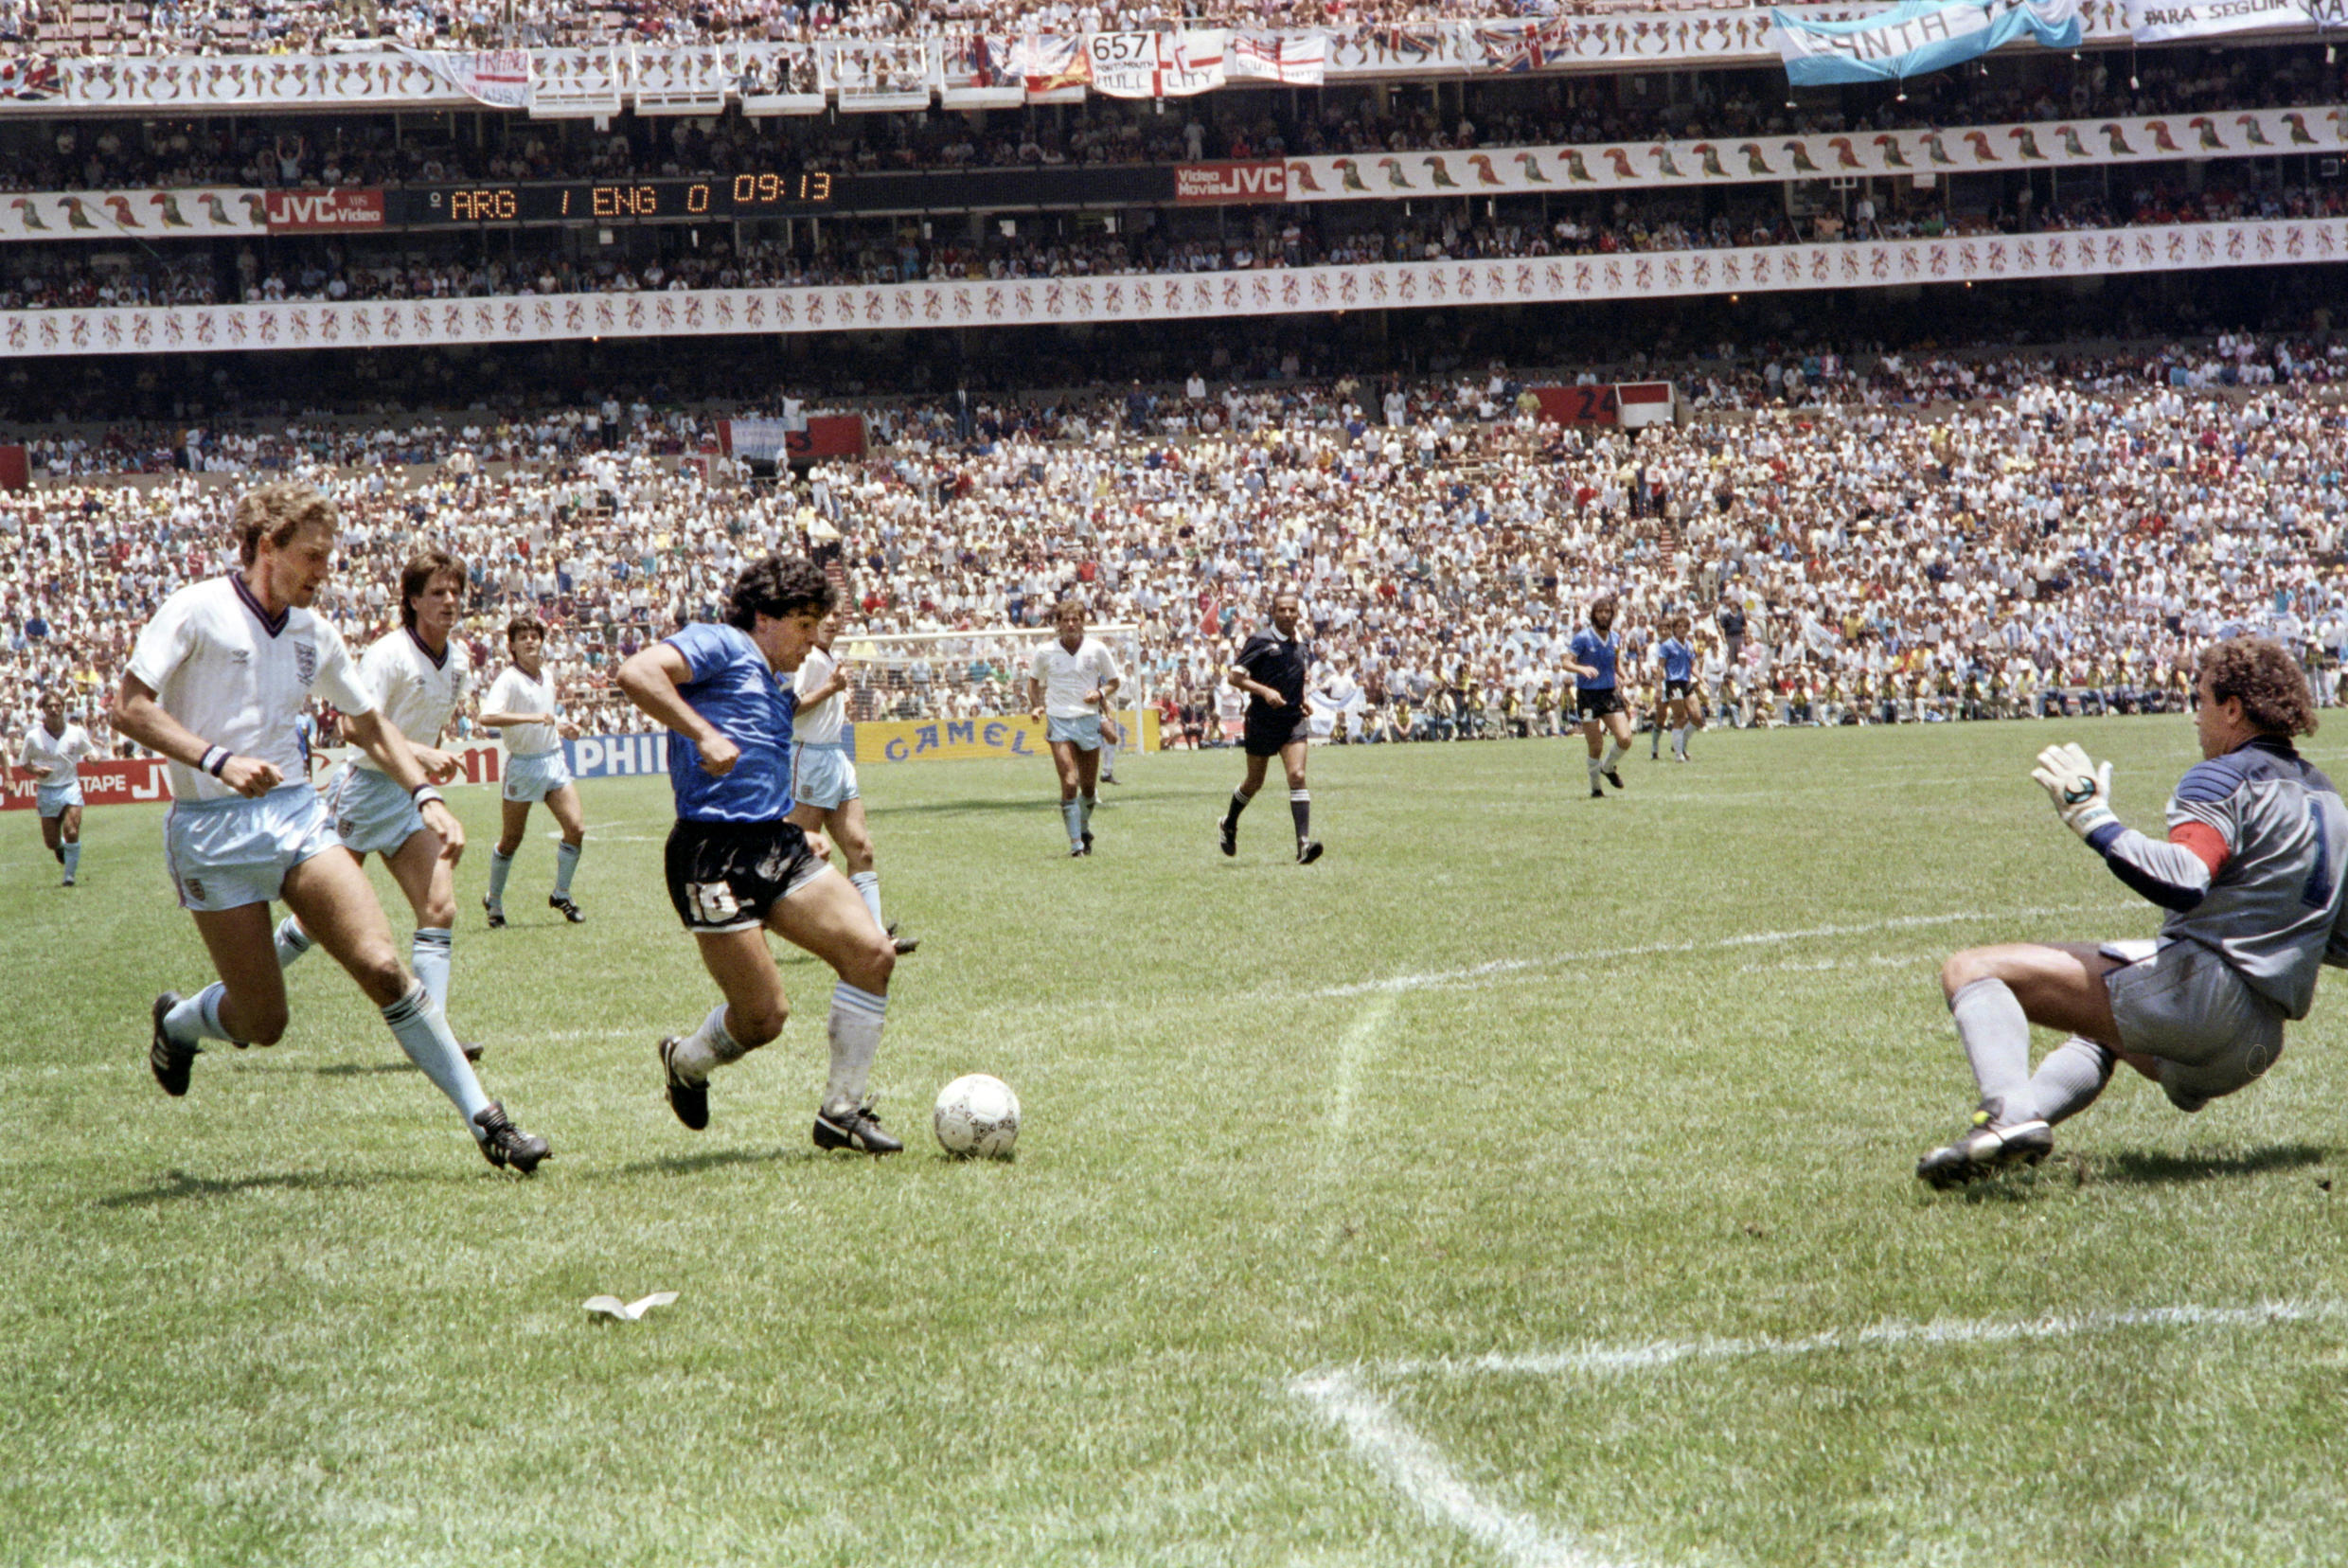 (FILE) Photograph taken on June 22, 1986 in Mexico City. The Argentine star Diego Maradona marks the so-called Goal of the Century for England playing for Argentina in the Mexico-1986 World Cup